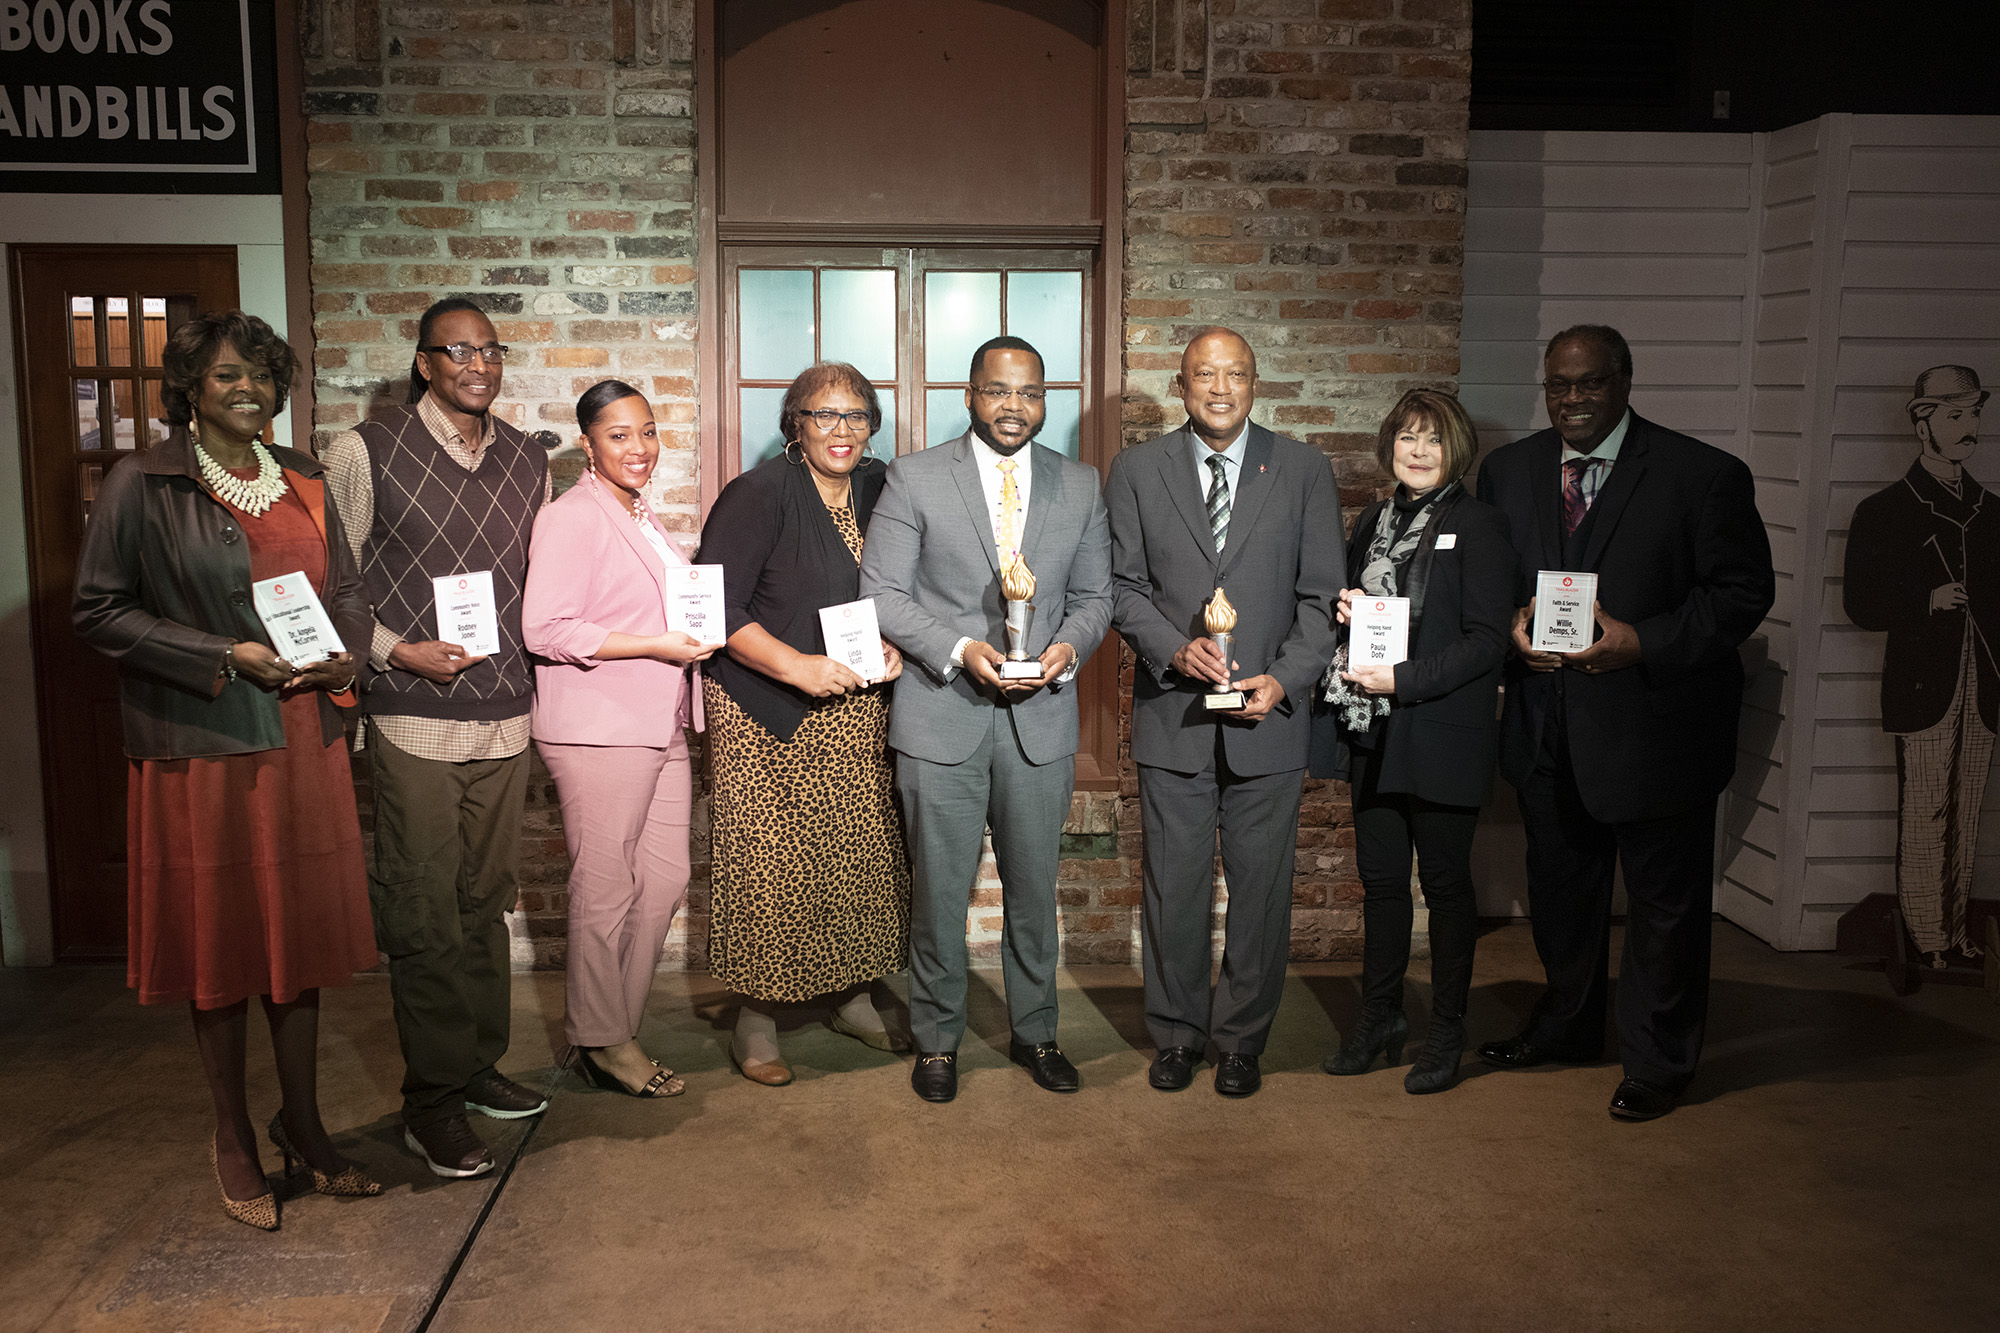 UWF honors local community members at the third annual Trailblazer Awards luncheon hosted at the Museum of Commerce on Feb. 20, 2019